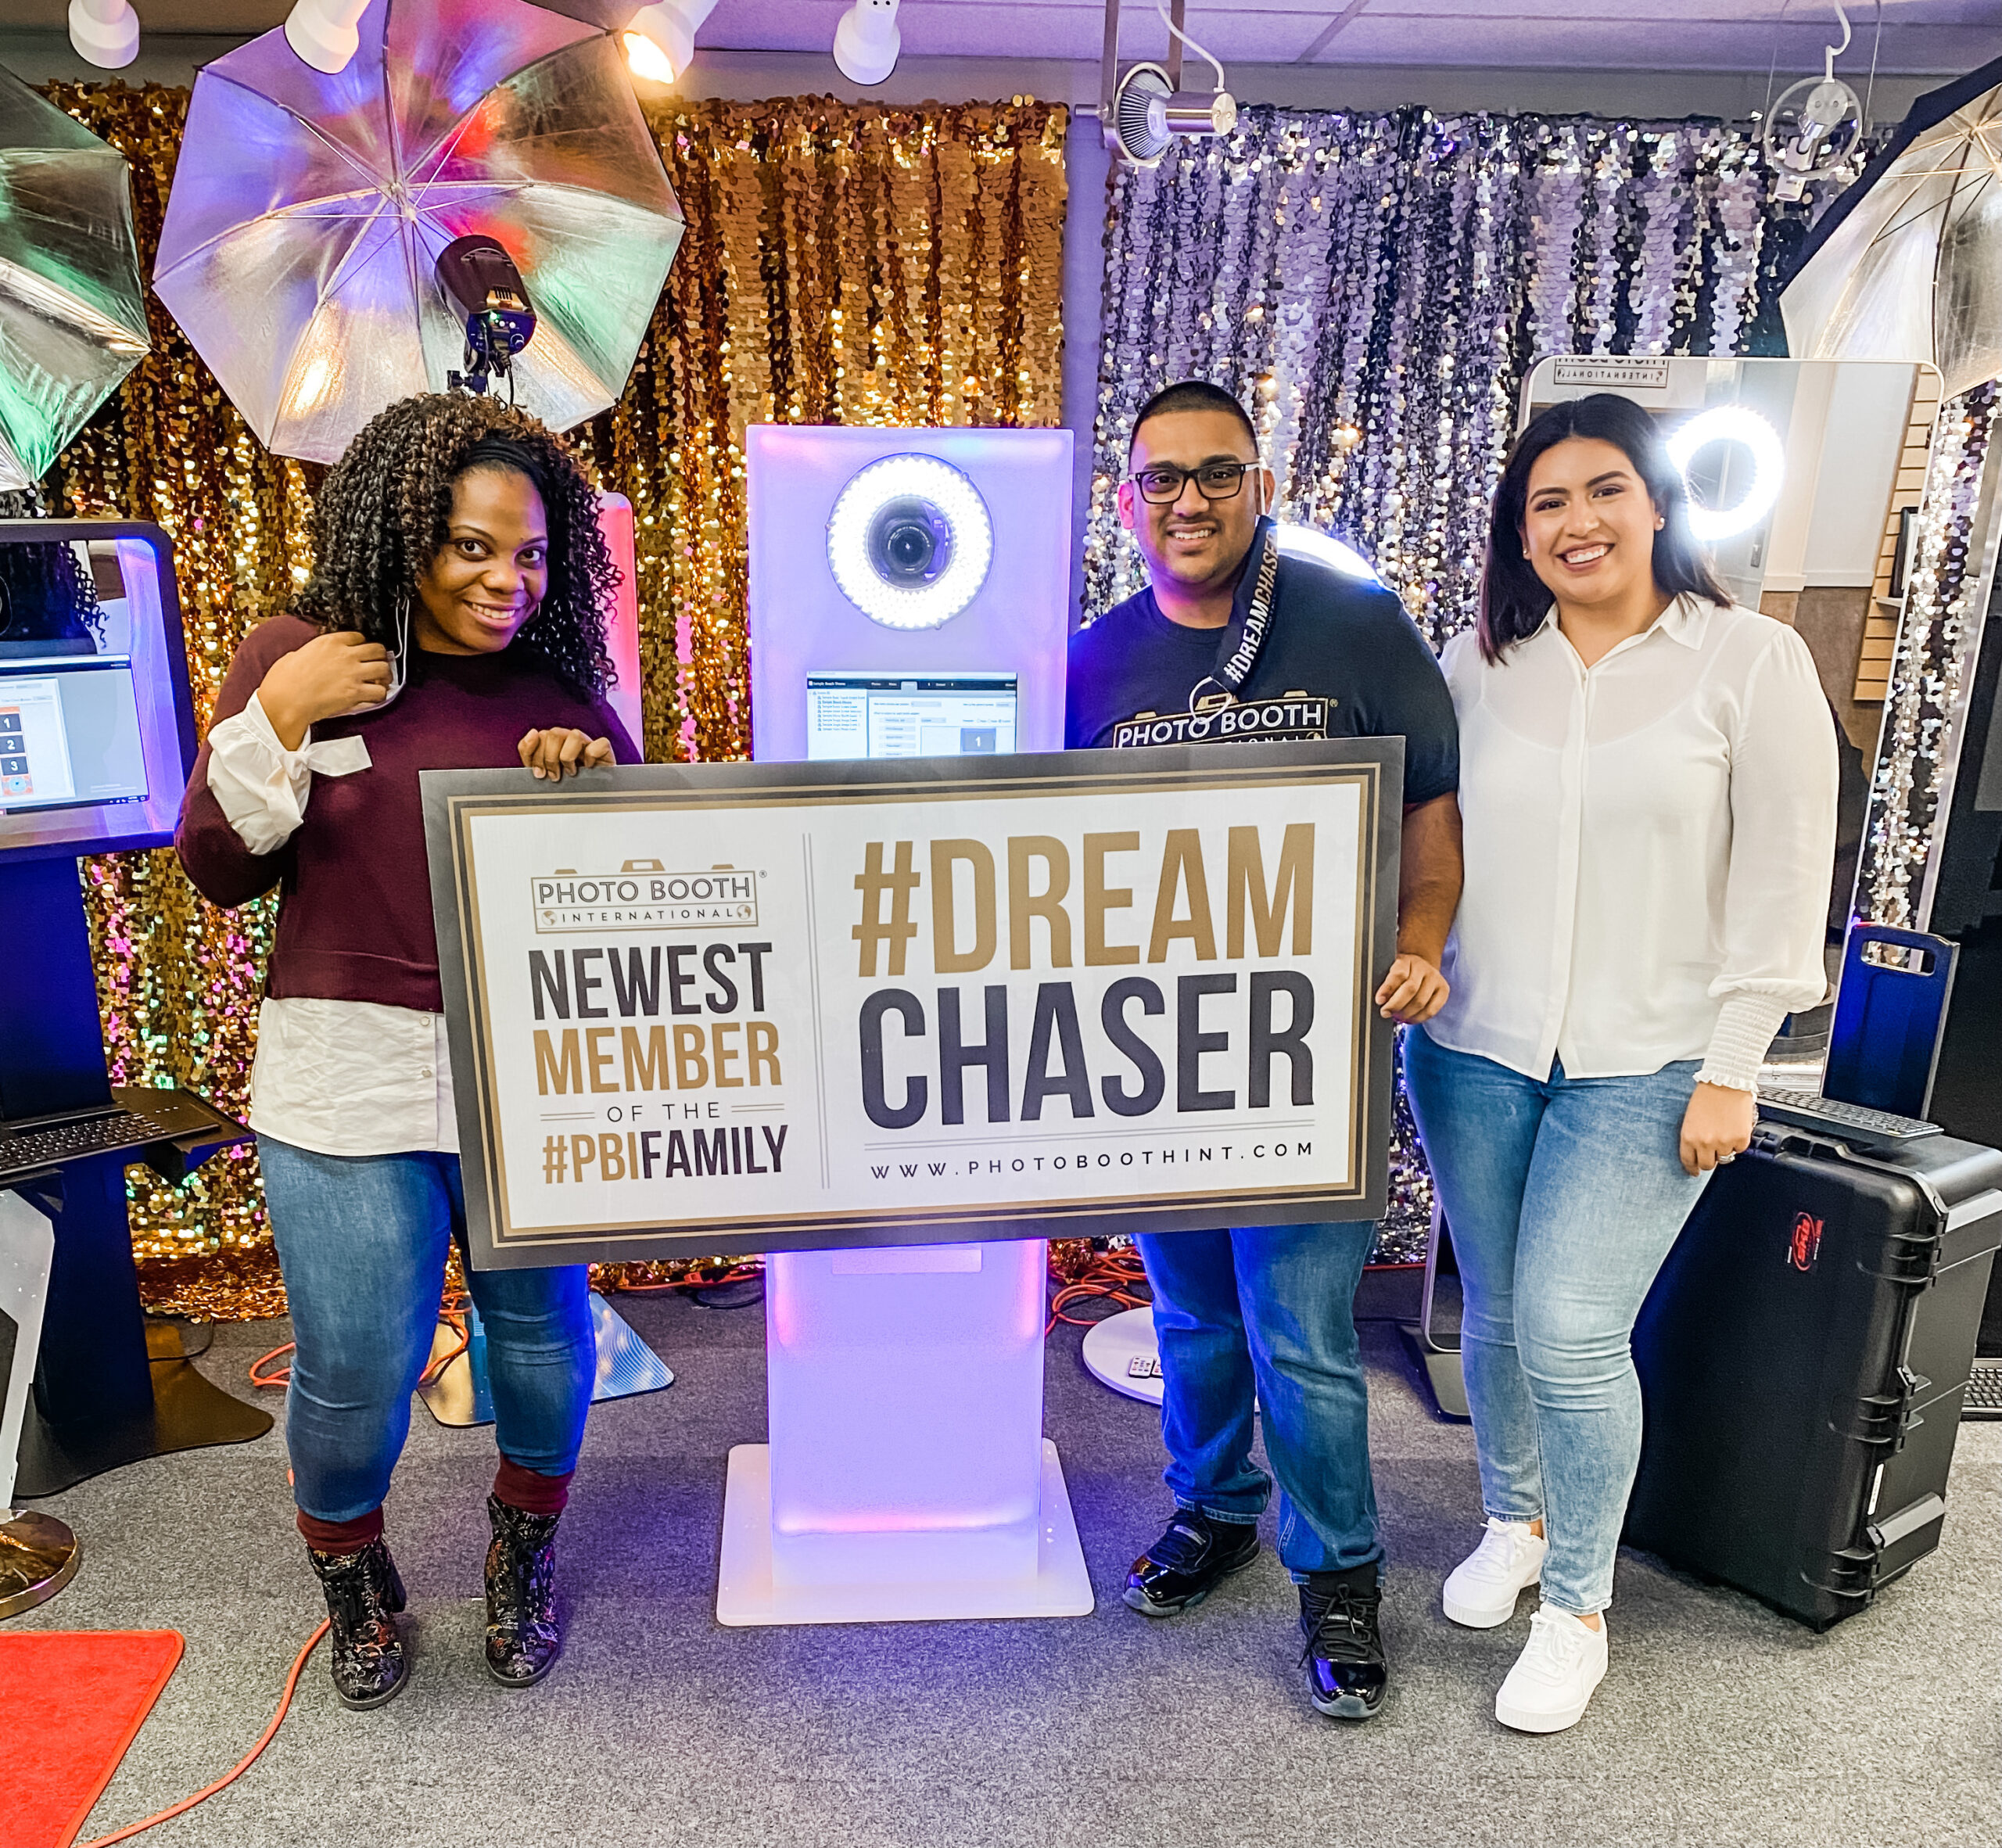 Photo Booth International Makes List of Fastest-Growing Companies in Texas 1